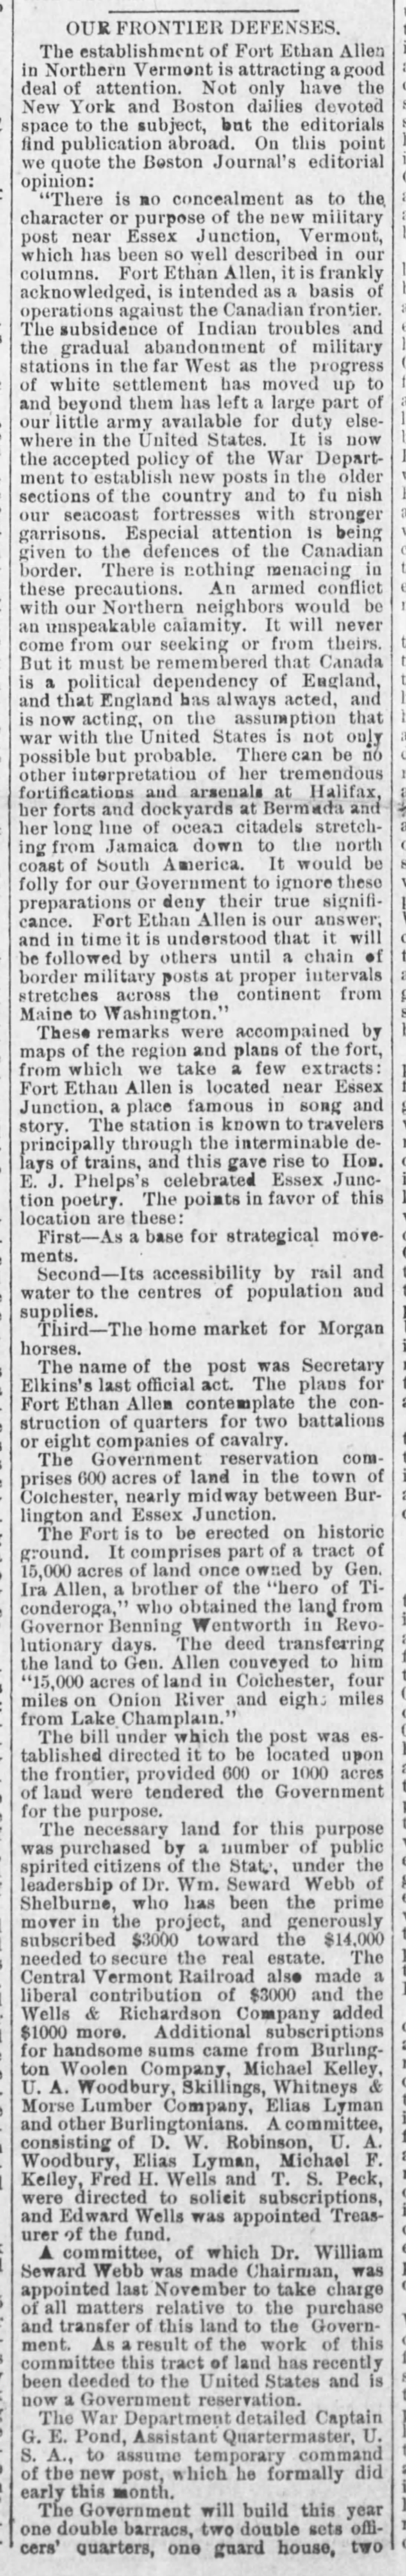 Article in the Bennington (VT) Banner dated March 24, 1893 that speculates to the reasons behind the commissioning of Fort Ethan Allen. Demonstrates the ever changing nature of International Relations.